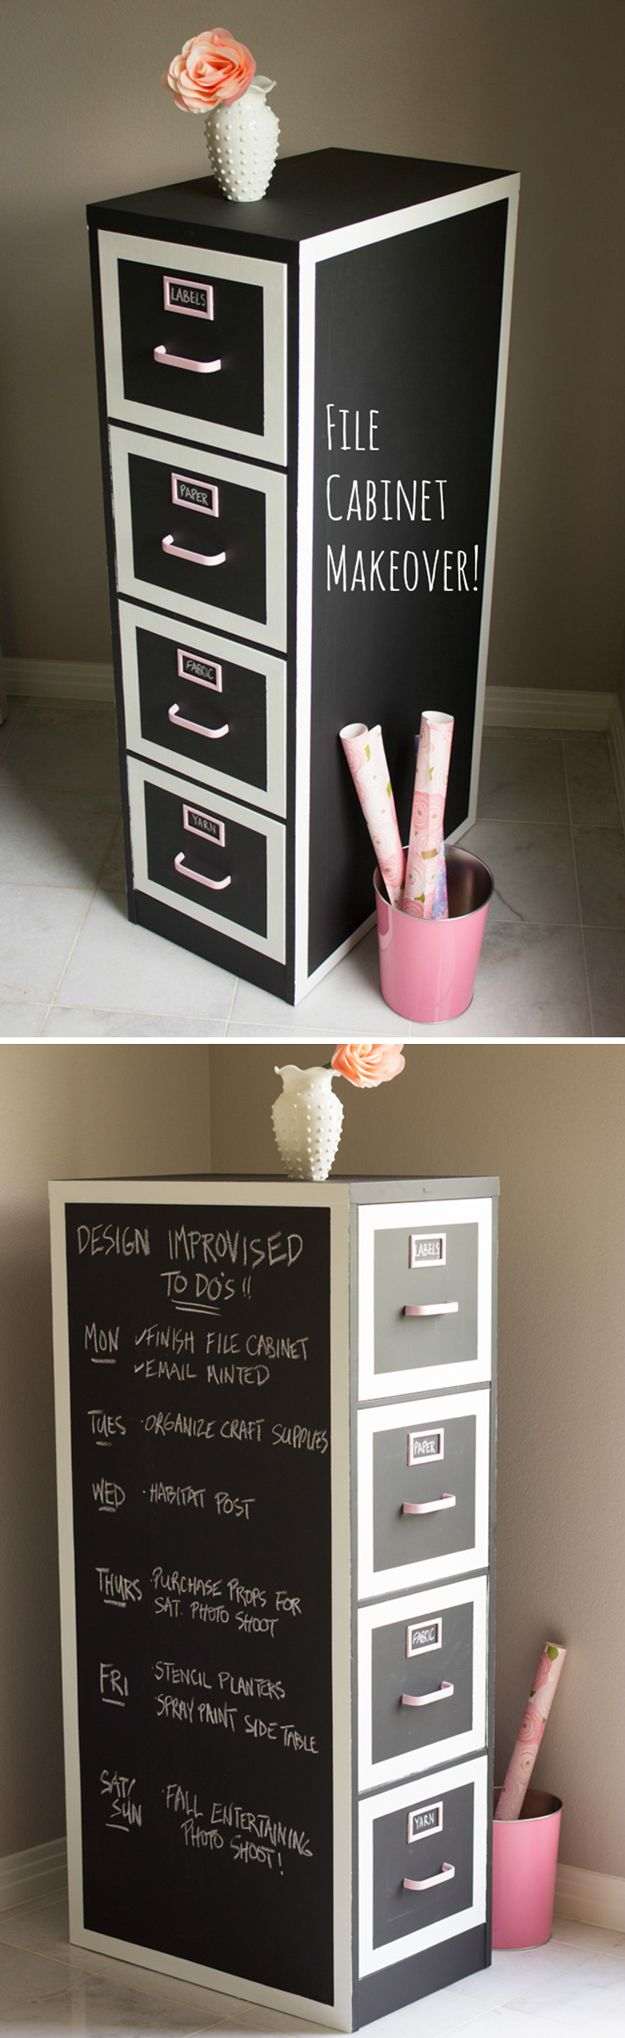 Chalk Paint Ideas for Rustic Home Decor Painted file